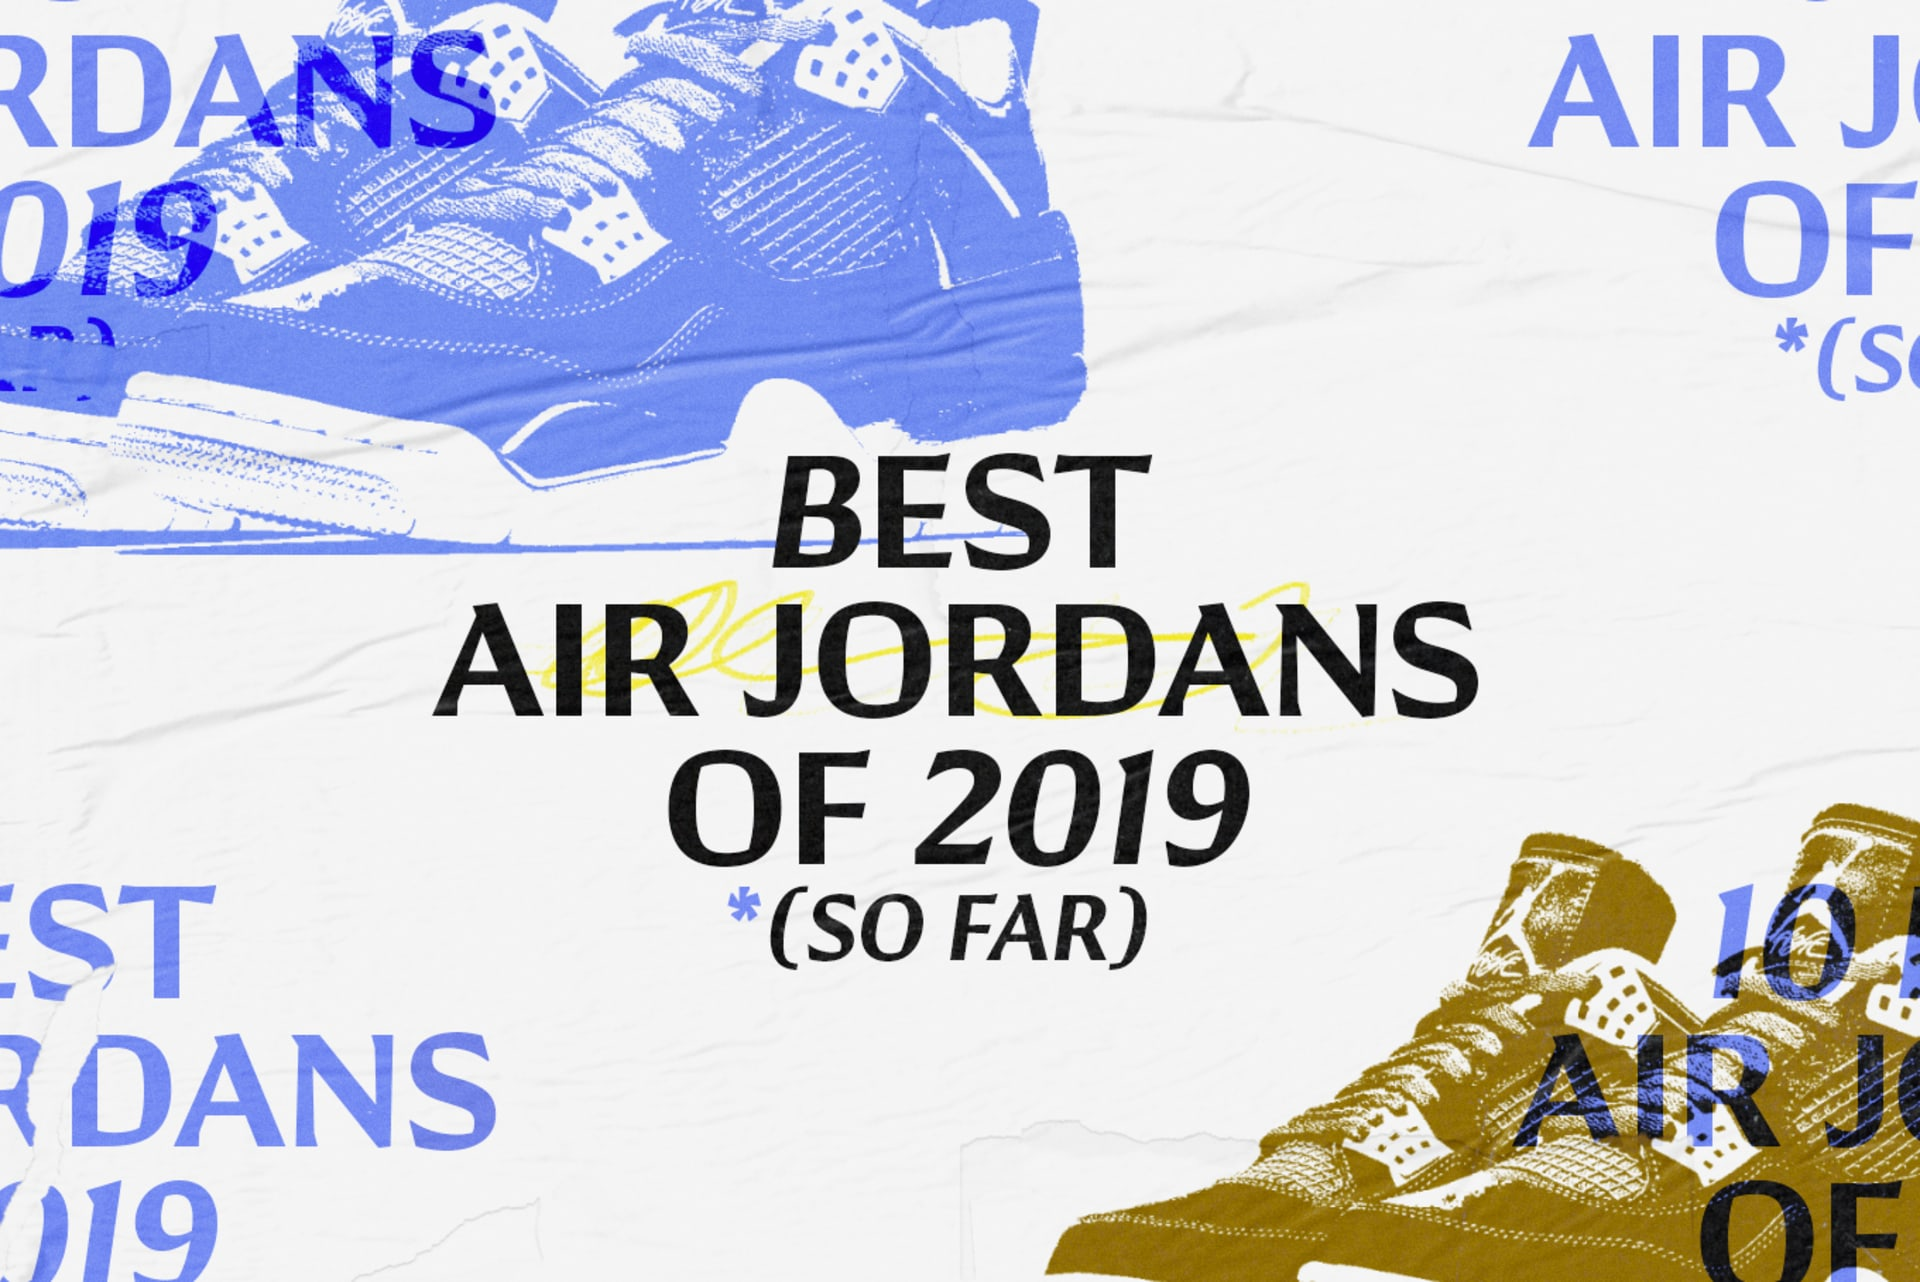 Best Air Jordans 2019 So Far